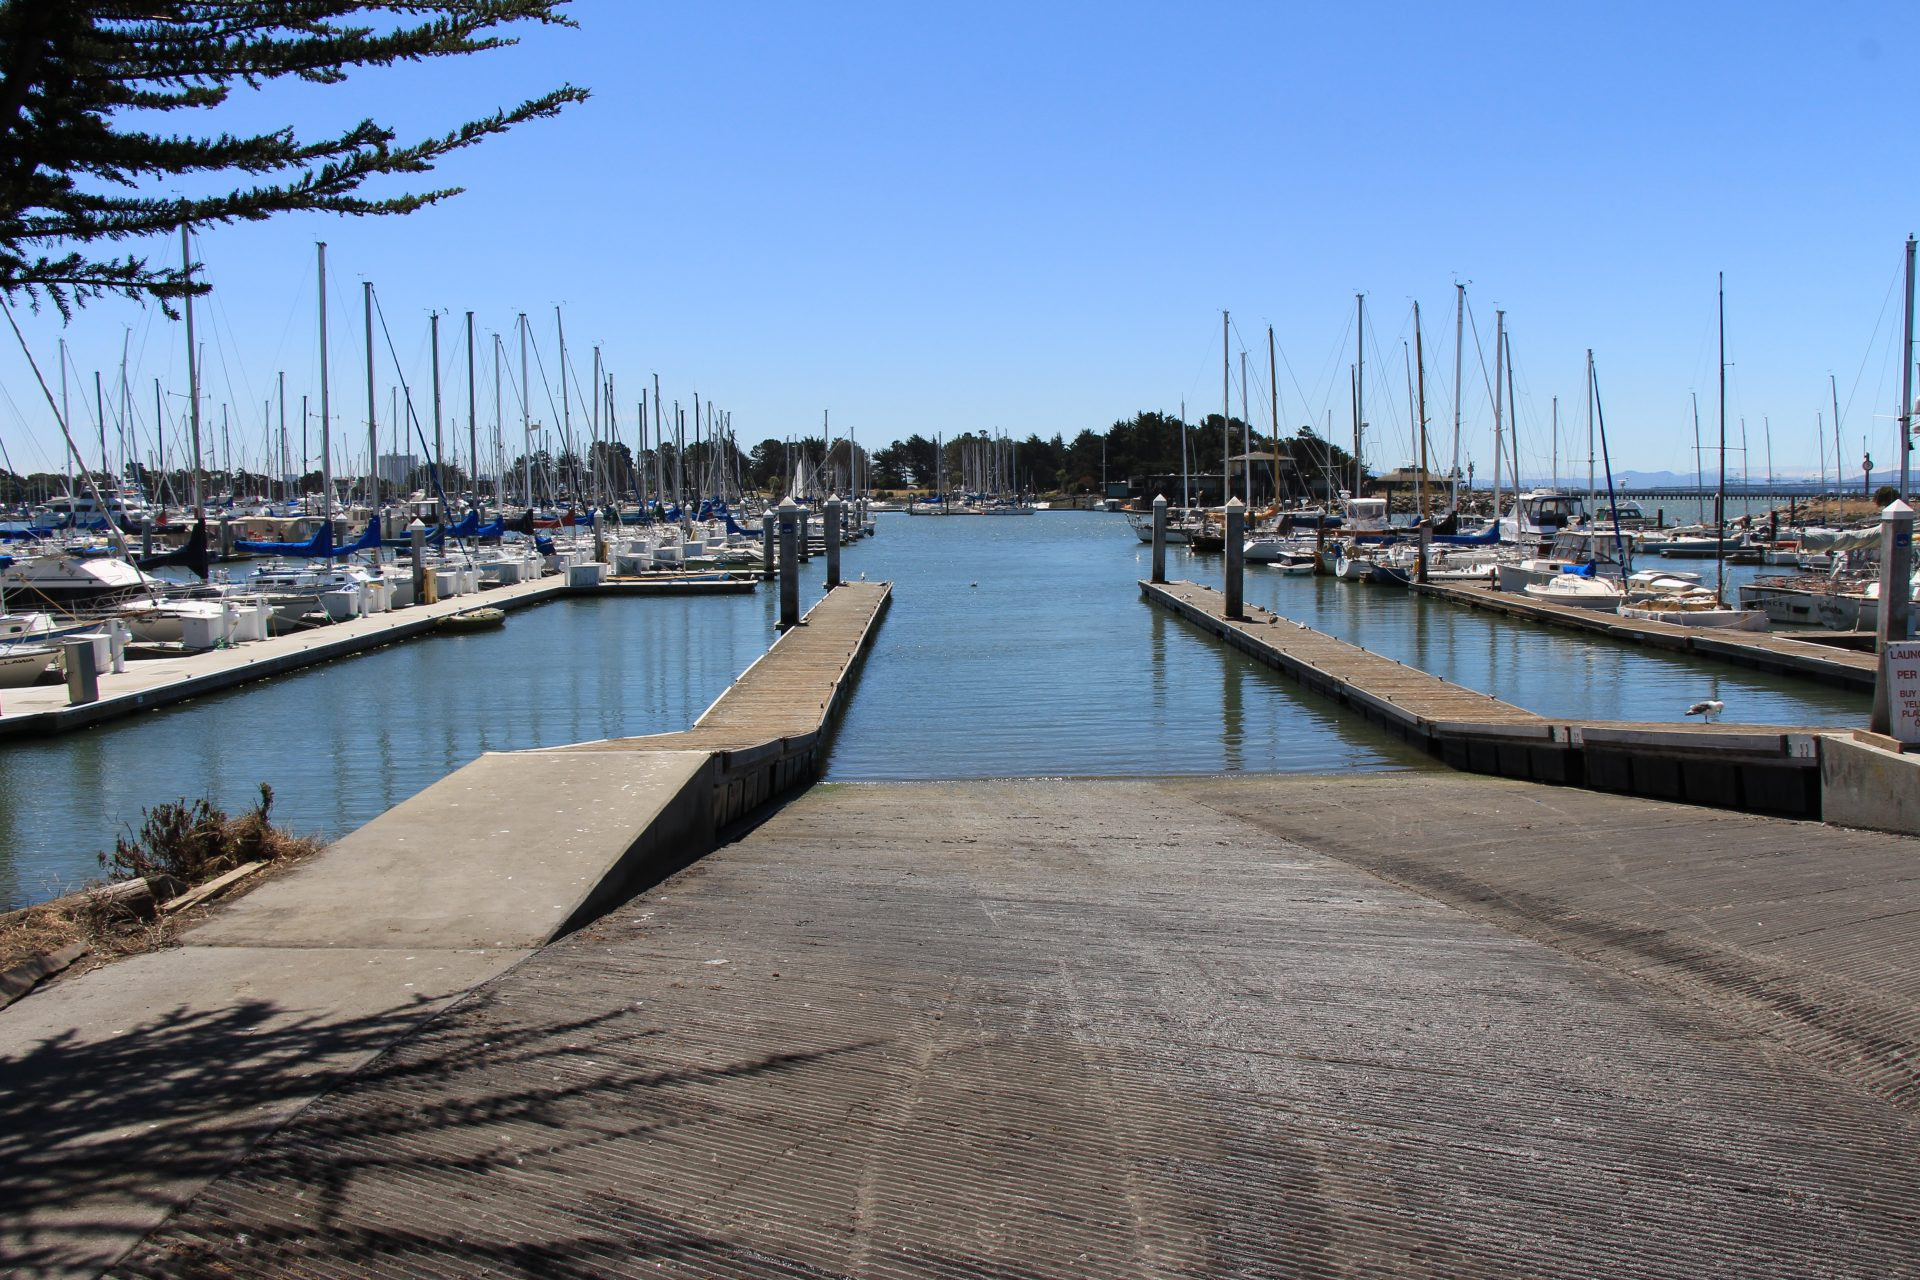 Wide boat ramp descending into water, with sailboats moored all aorund